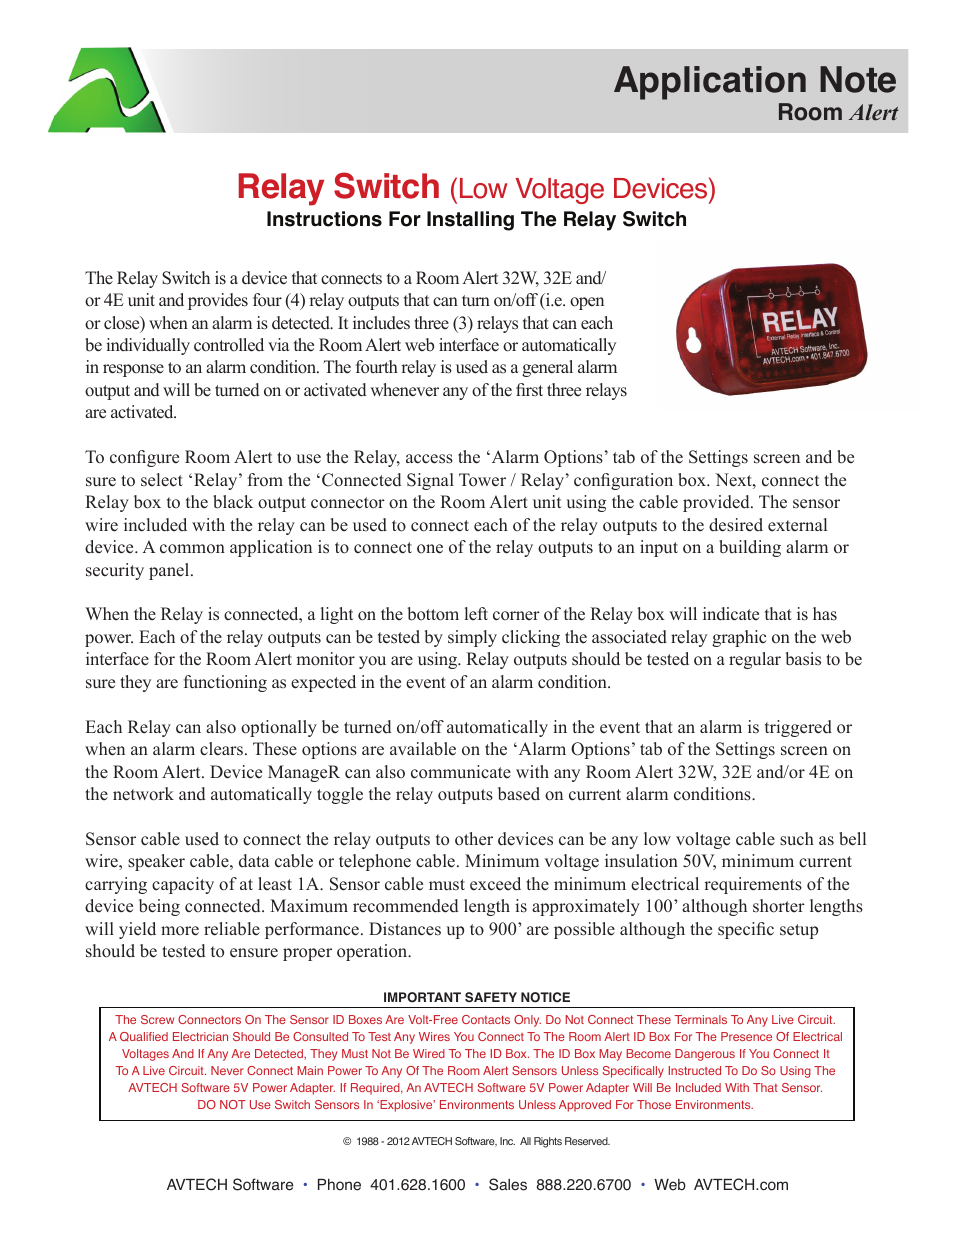 Avtech Relay Switch Sensor Rma Sen User Manual 1 Page Current Based